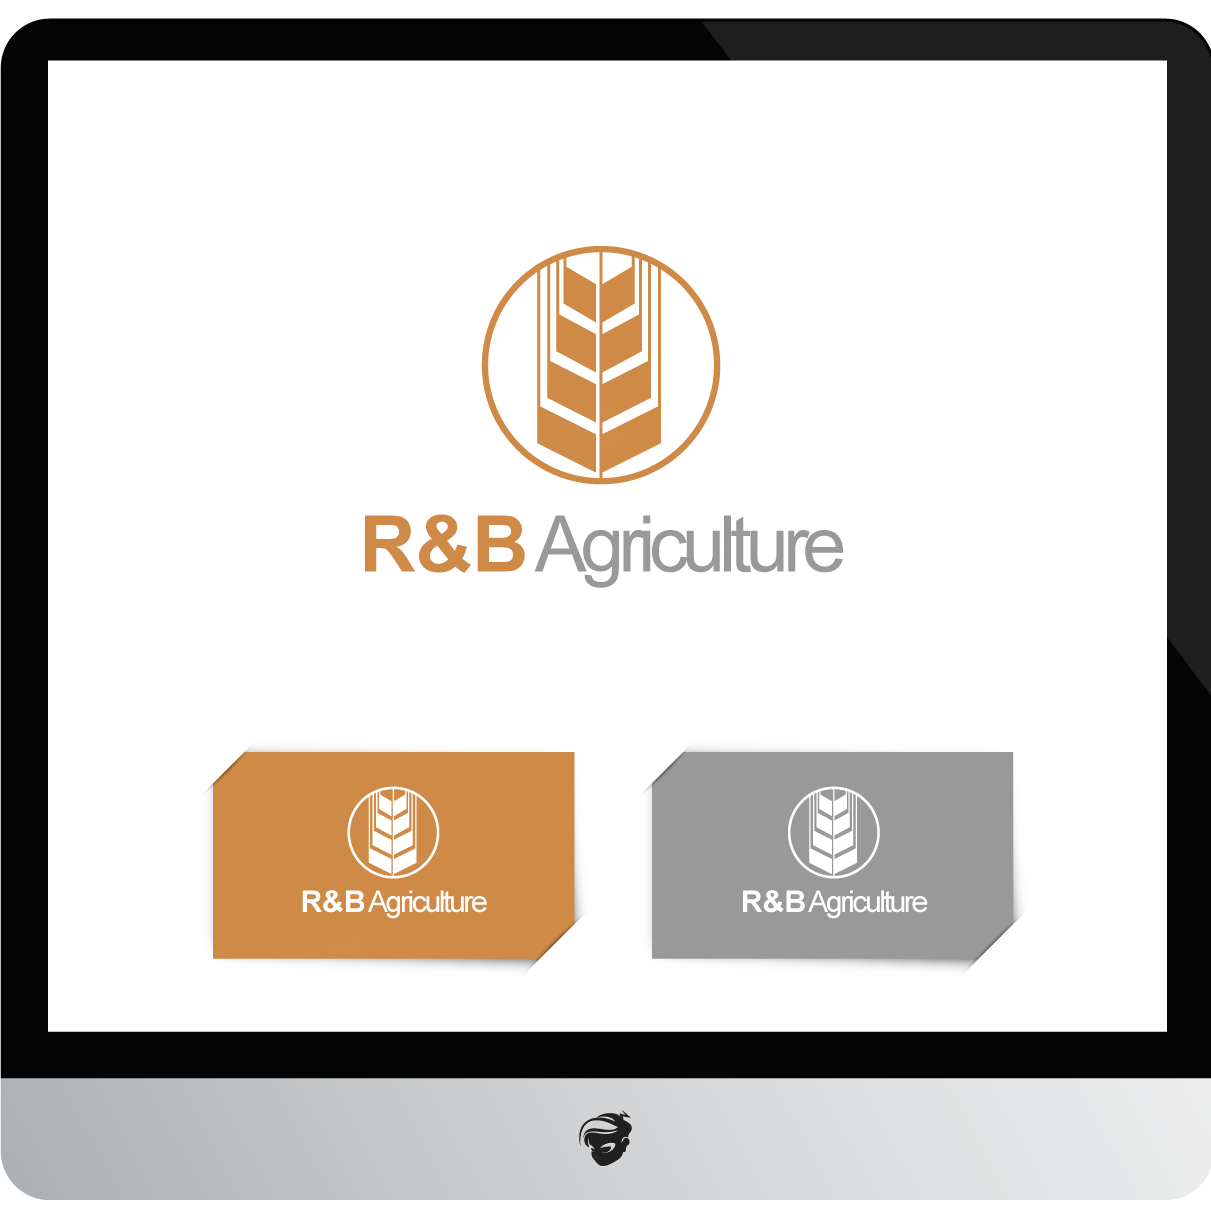 Logo Design by zesthar - Entry No. 146 in the Logo Design Contest Captivating Logo Design for R & B Agriculture.